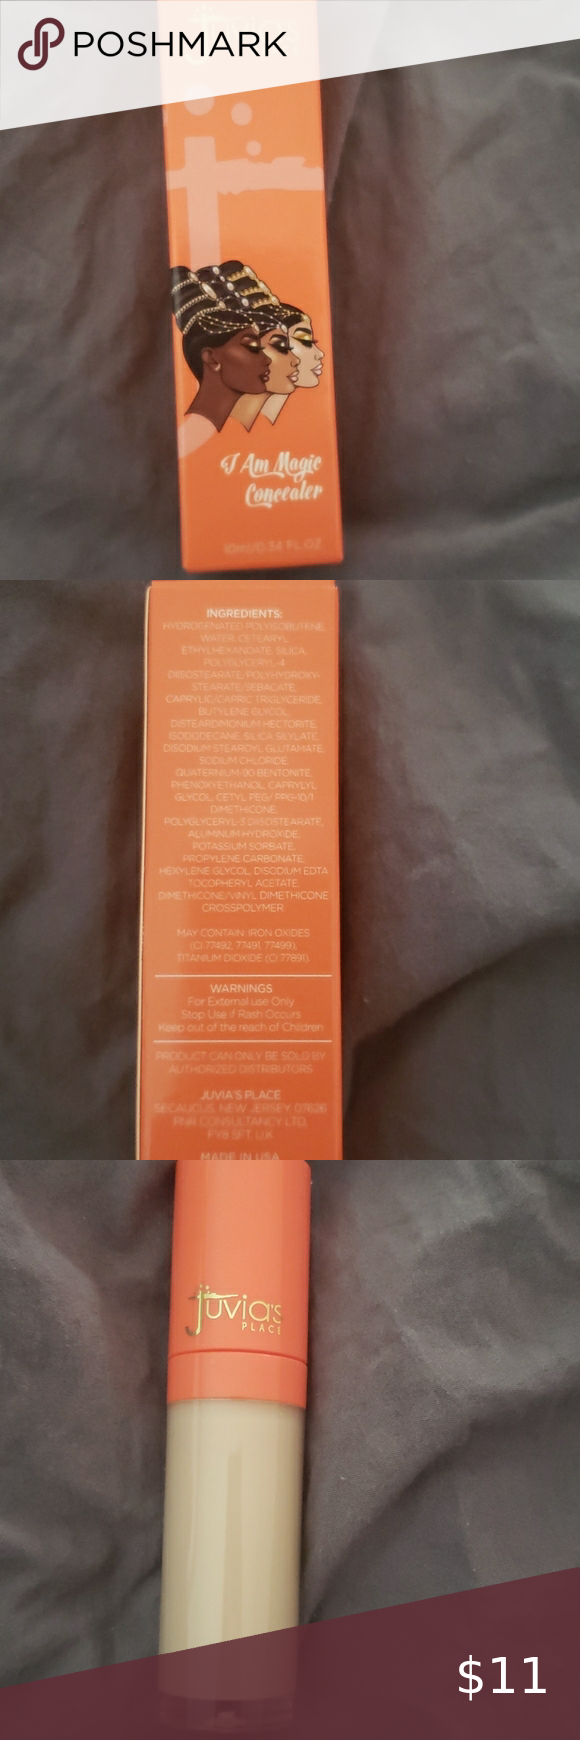 Juvias place concealer in shade 23 (10 ml) Brand new never opened or used. Juvia's Place Makeup Concealer